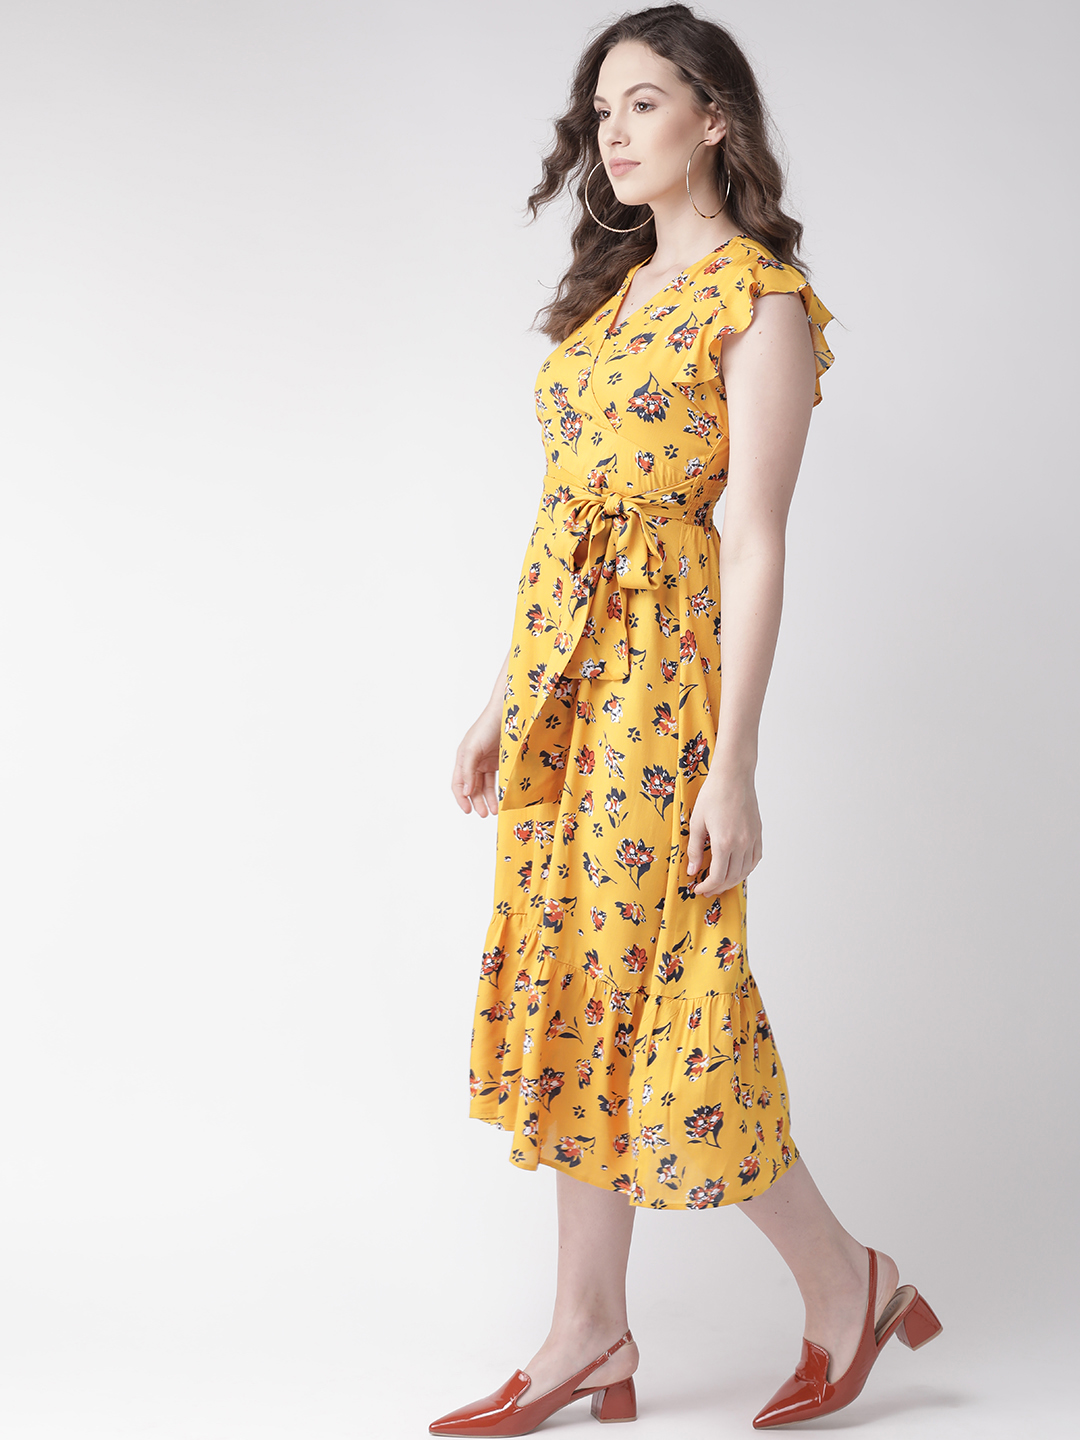 Dresses-Cool Classic Revival Yellow Dress5